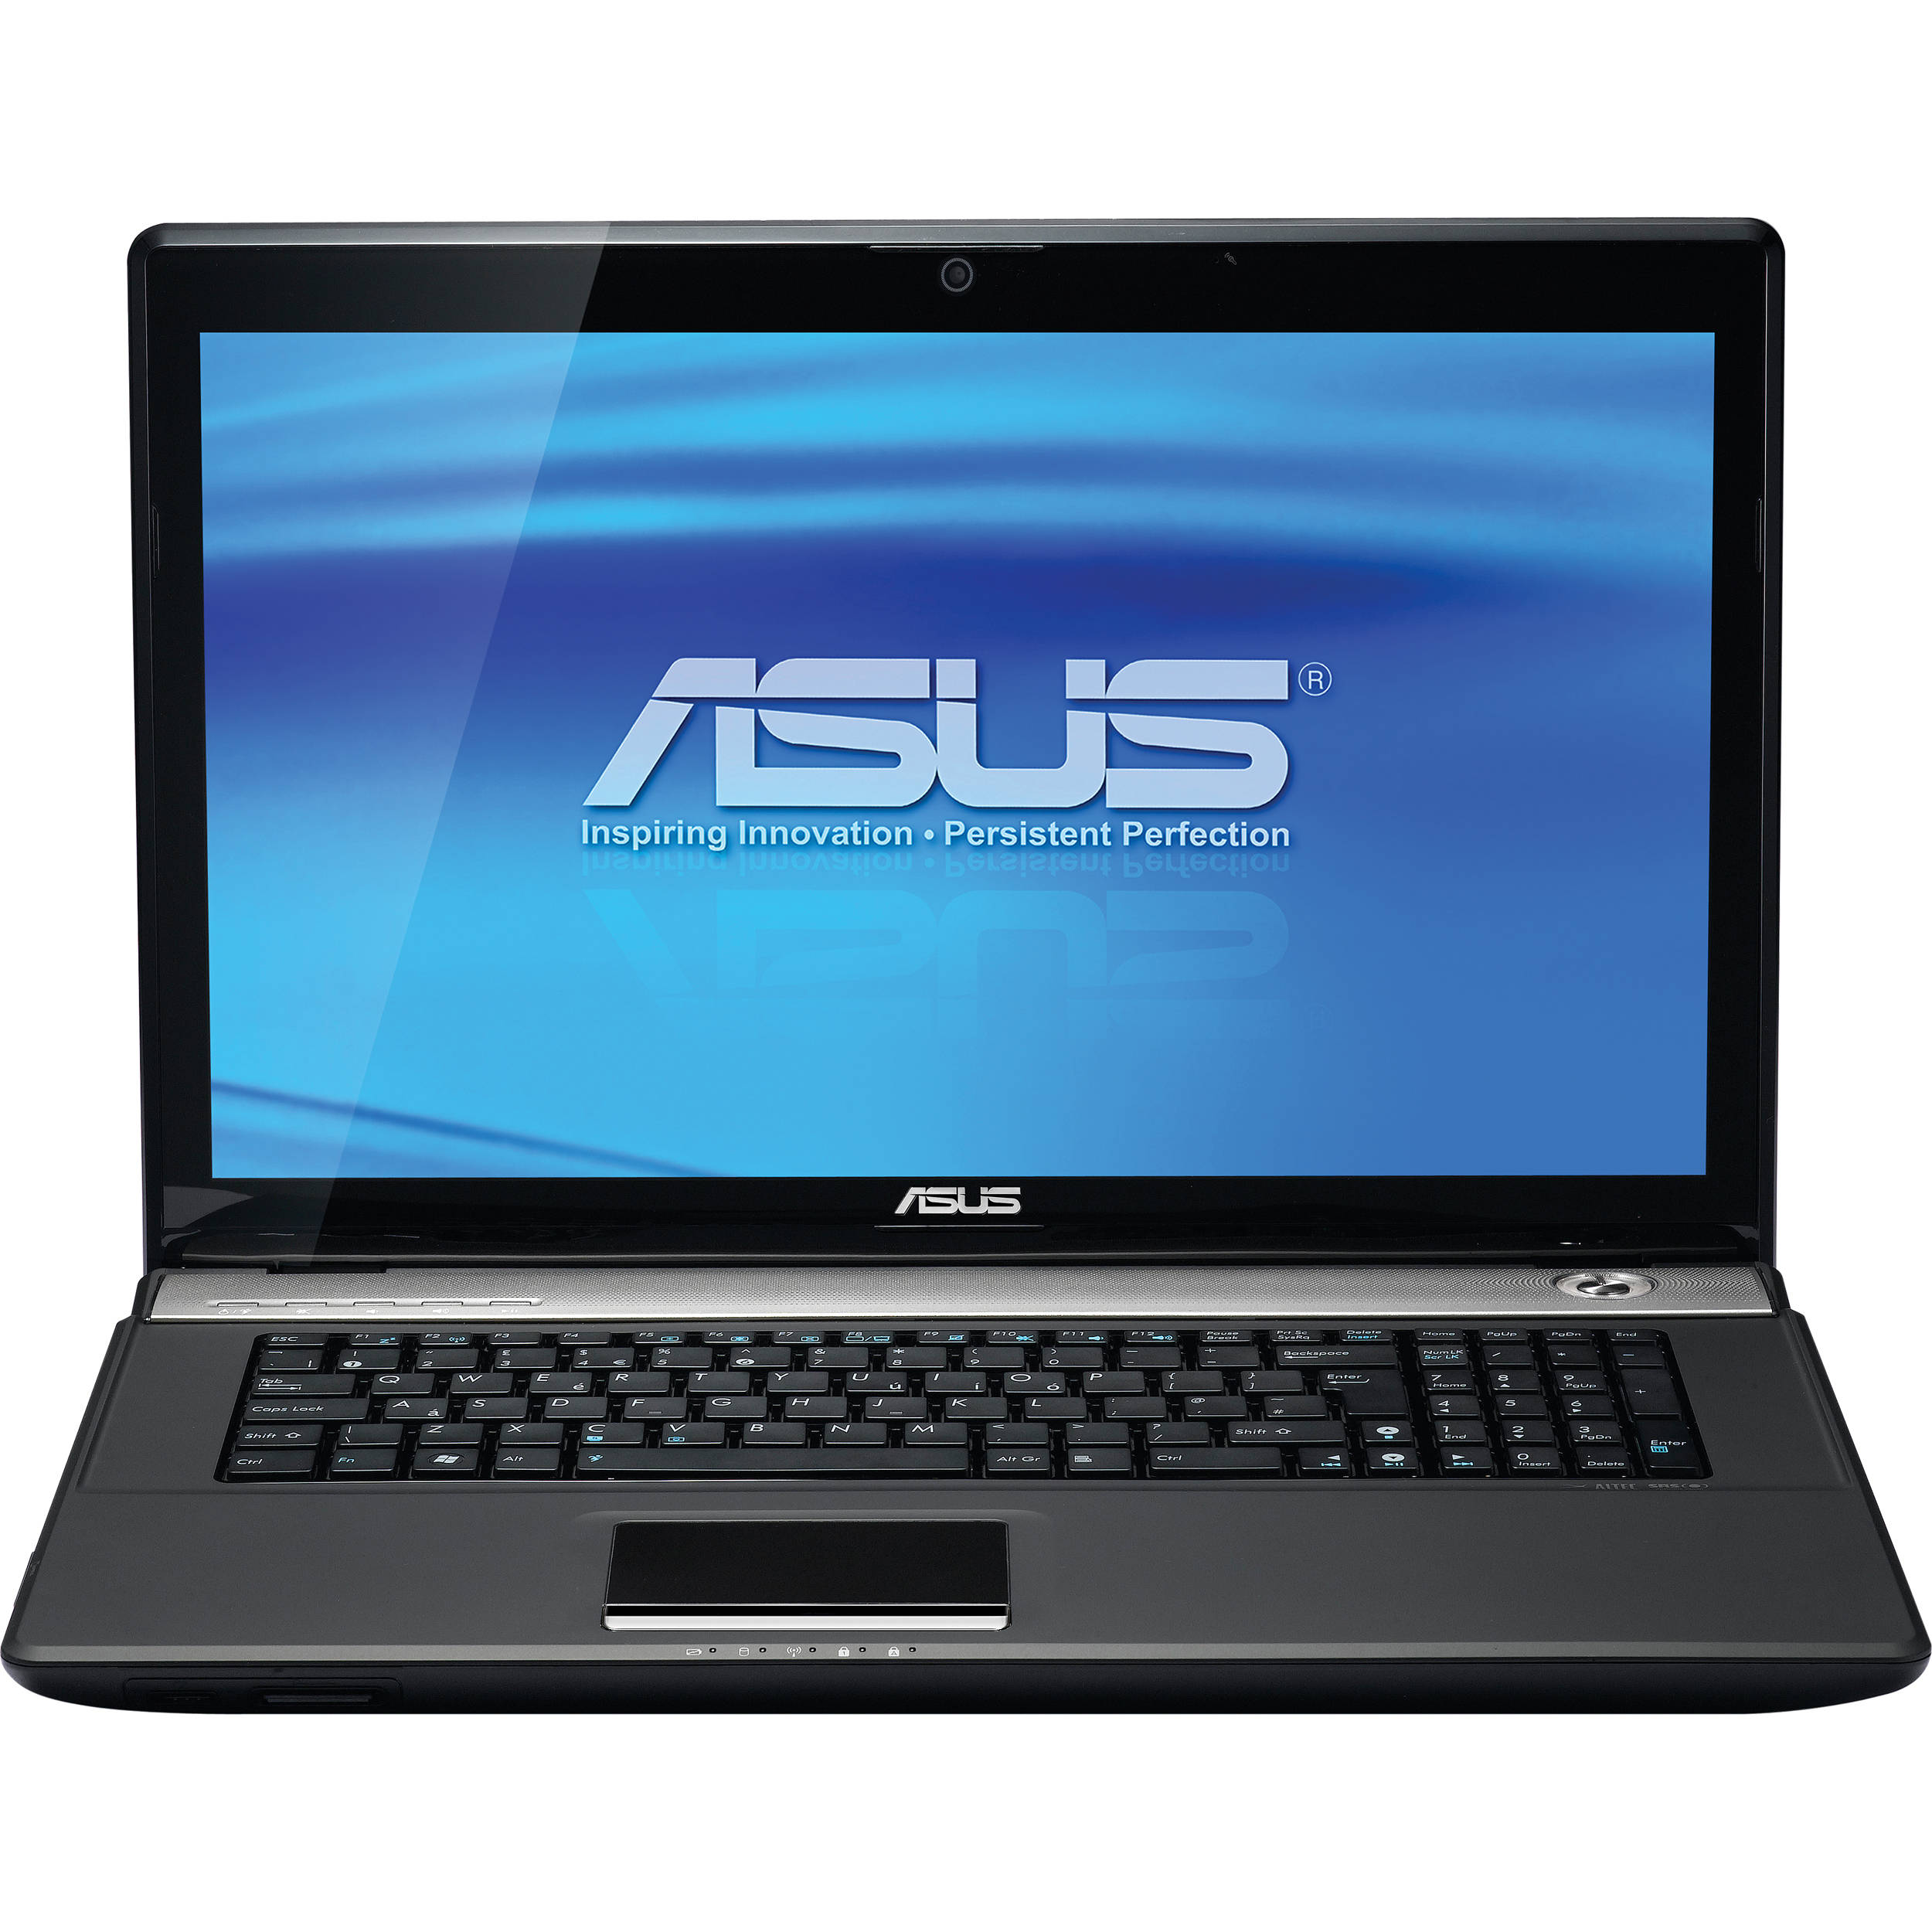 ASUS N71VN NOTEBOOK DRIVERS WINDOWS